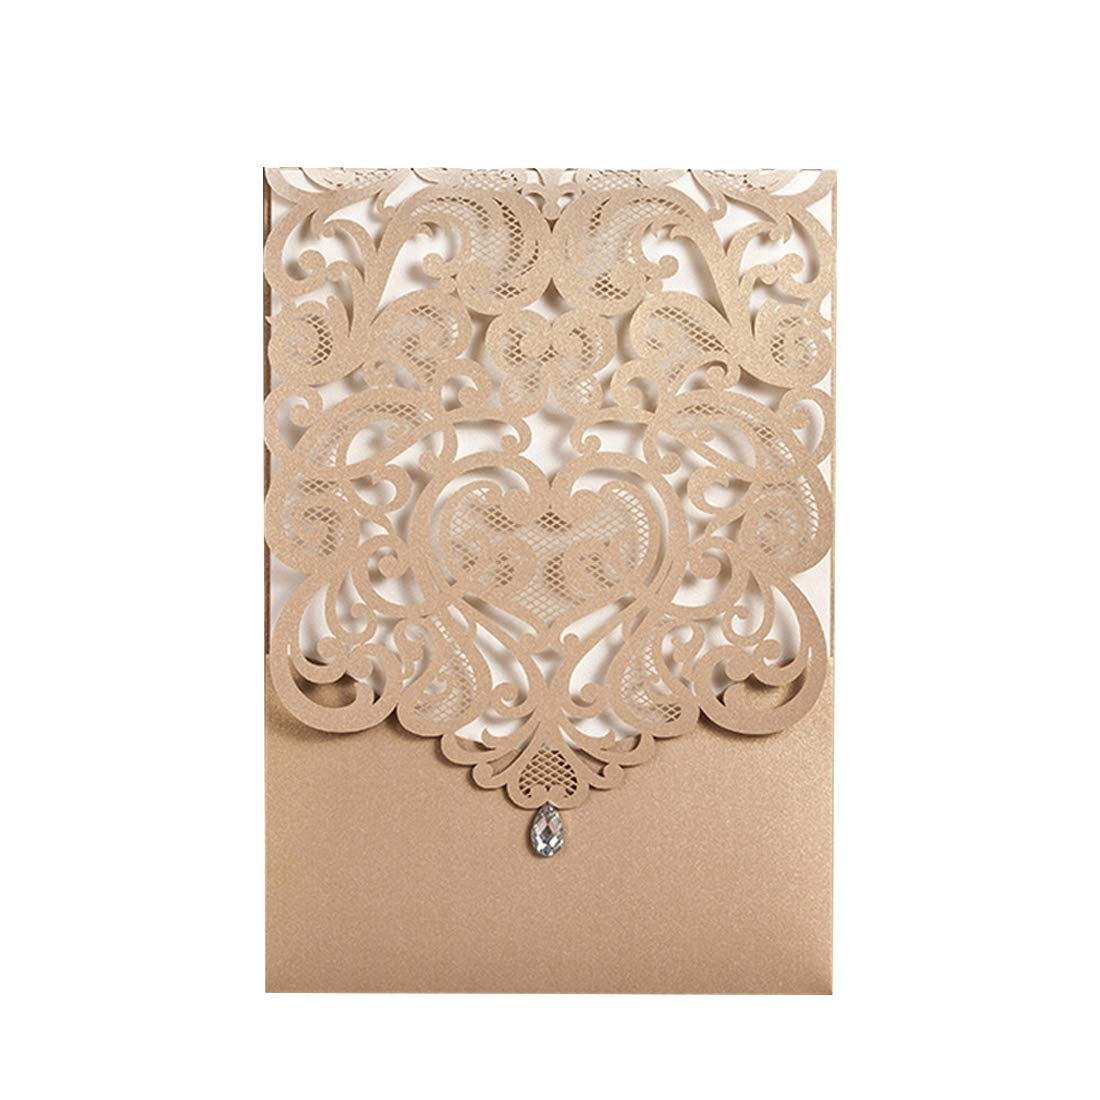 Wishmade 50pcs Gold Laser Cut Wedding Invitations Hollow Vertical Lace Flower Invitation Cards Kit With Rhinestone Marriage Engagement Bridal Shower: Wedding Invitations With Rhinestones At Reisefeber.org